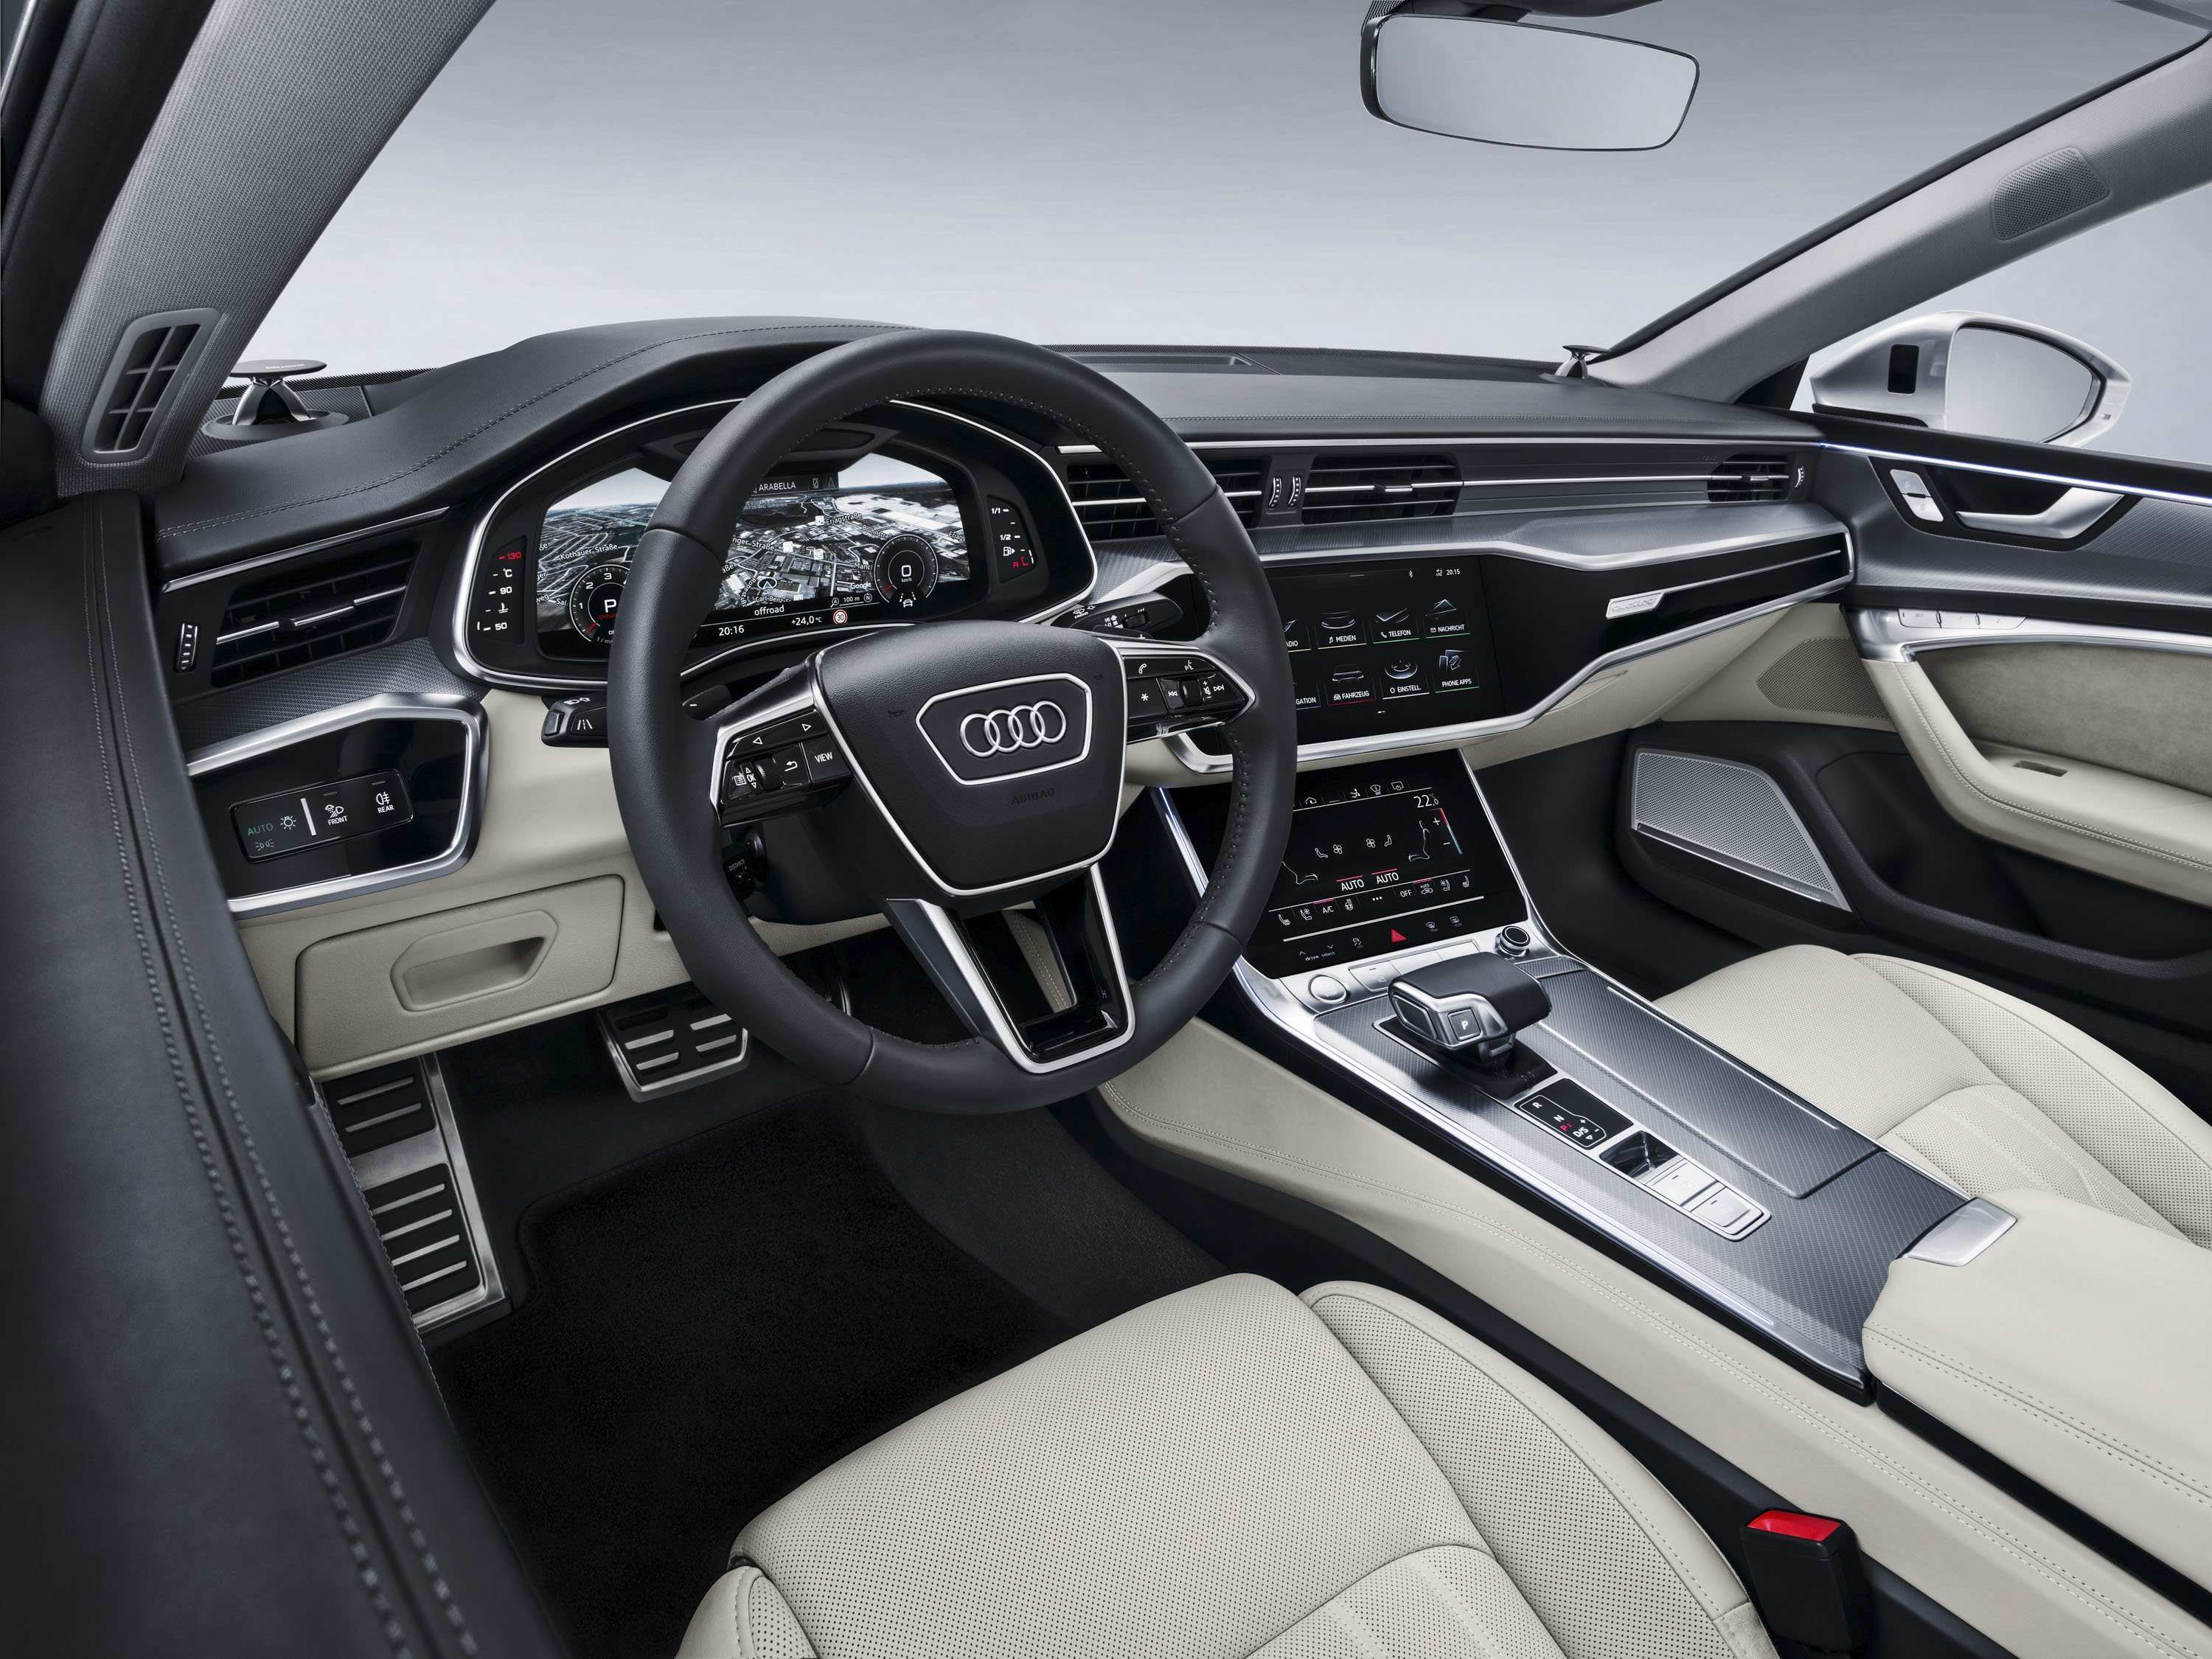 47 All New 2020 Audi Q3 Release Date Specs with 2020 Audi Q3 Release Date